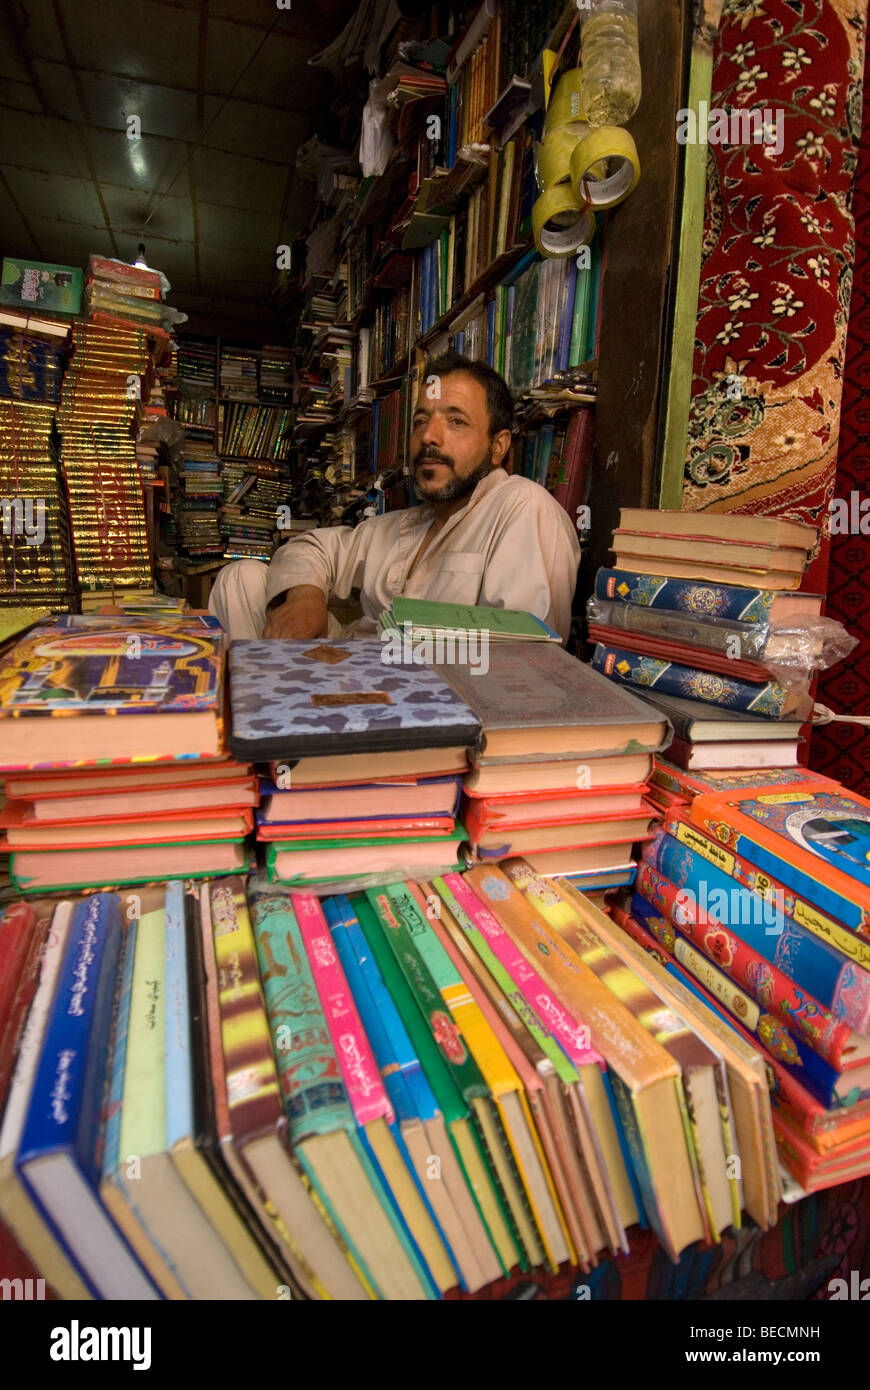 Afghanistan, Kabul. Central market. Bookseller sitting at his stall in the market. - Stock Image